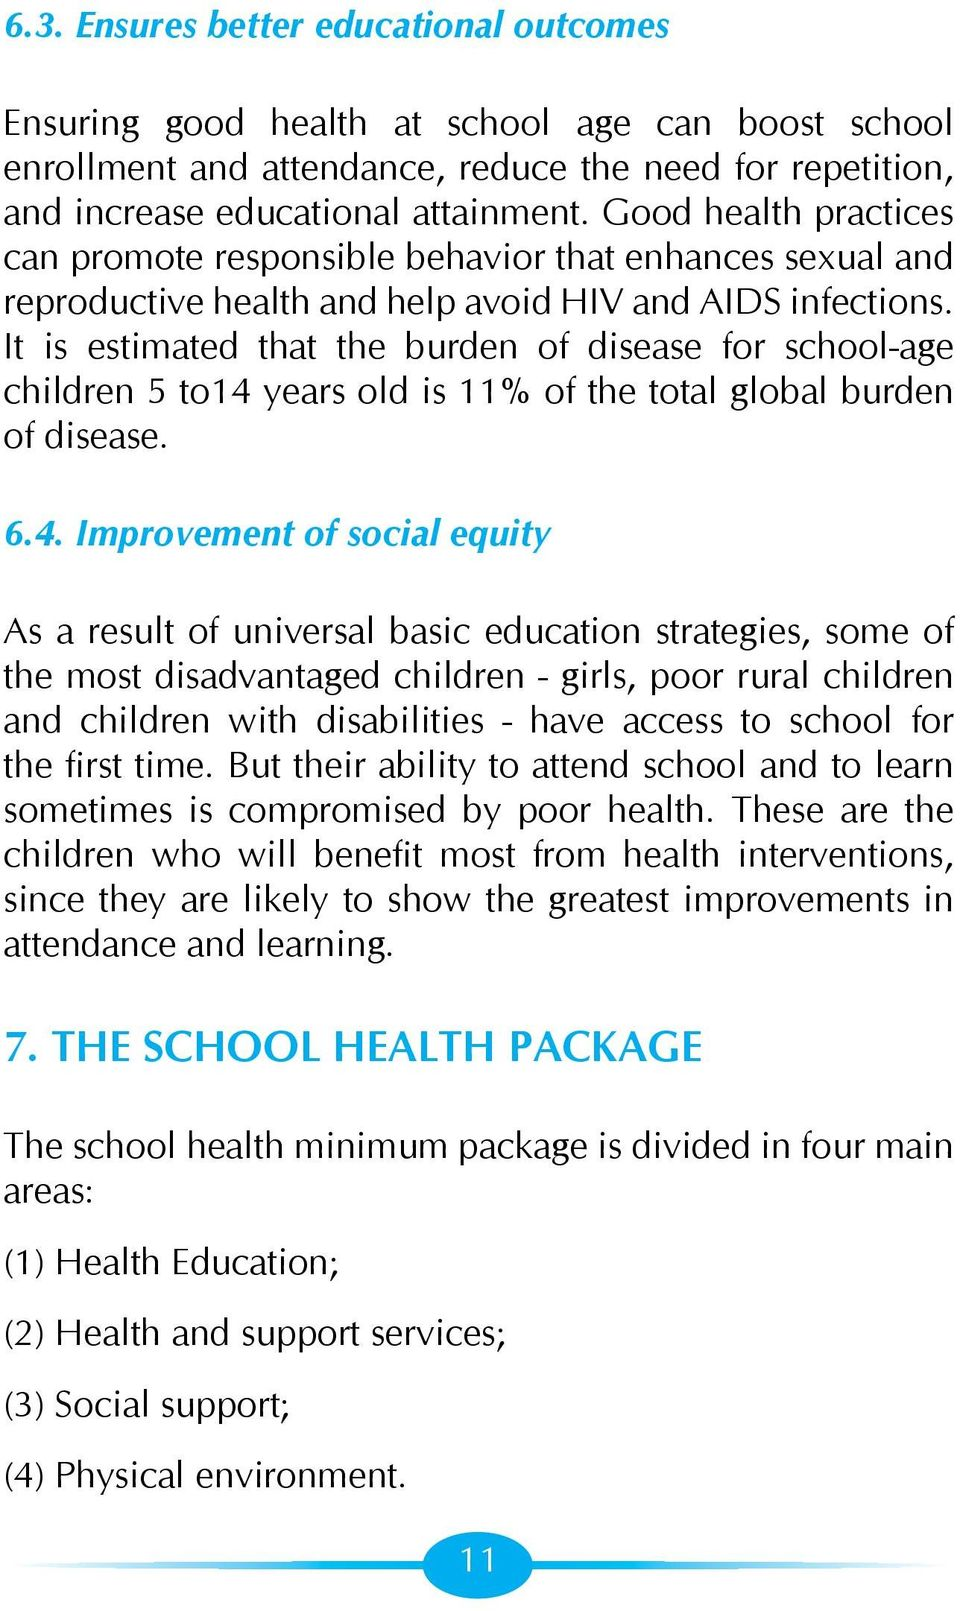 It is estimated that the burden of disease for school-age children 5 to14